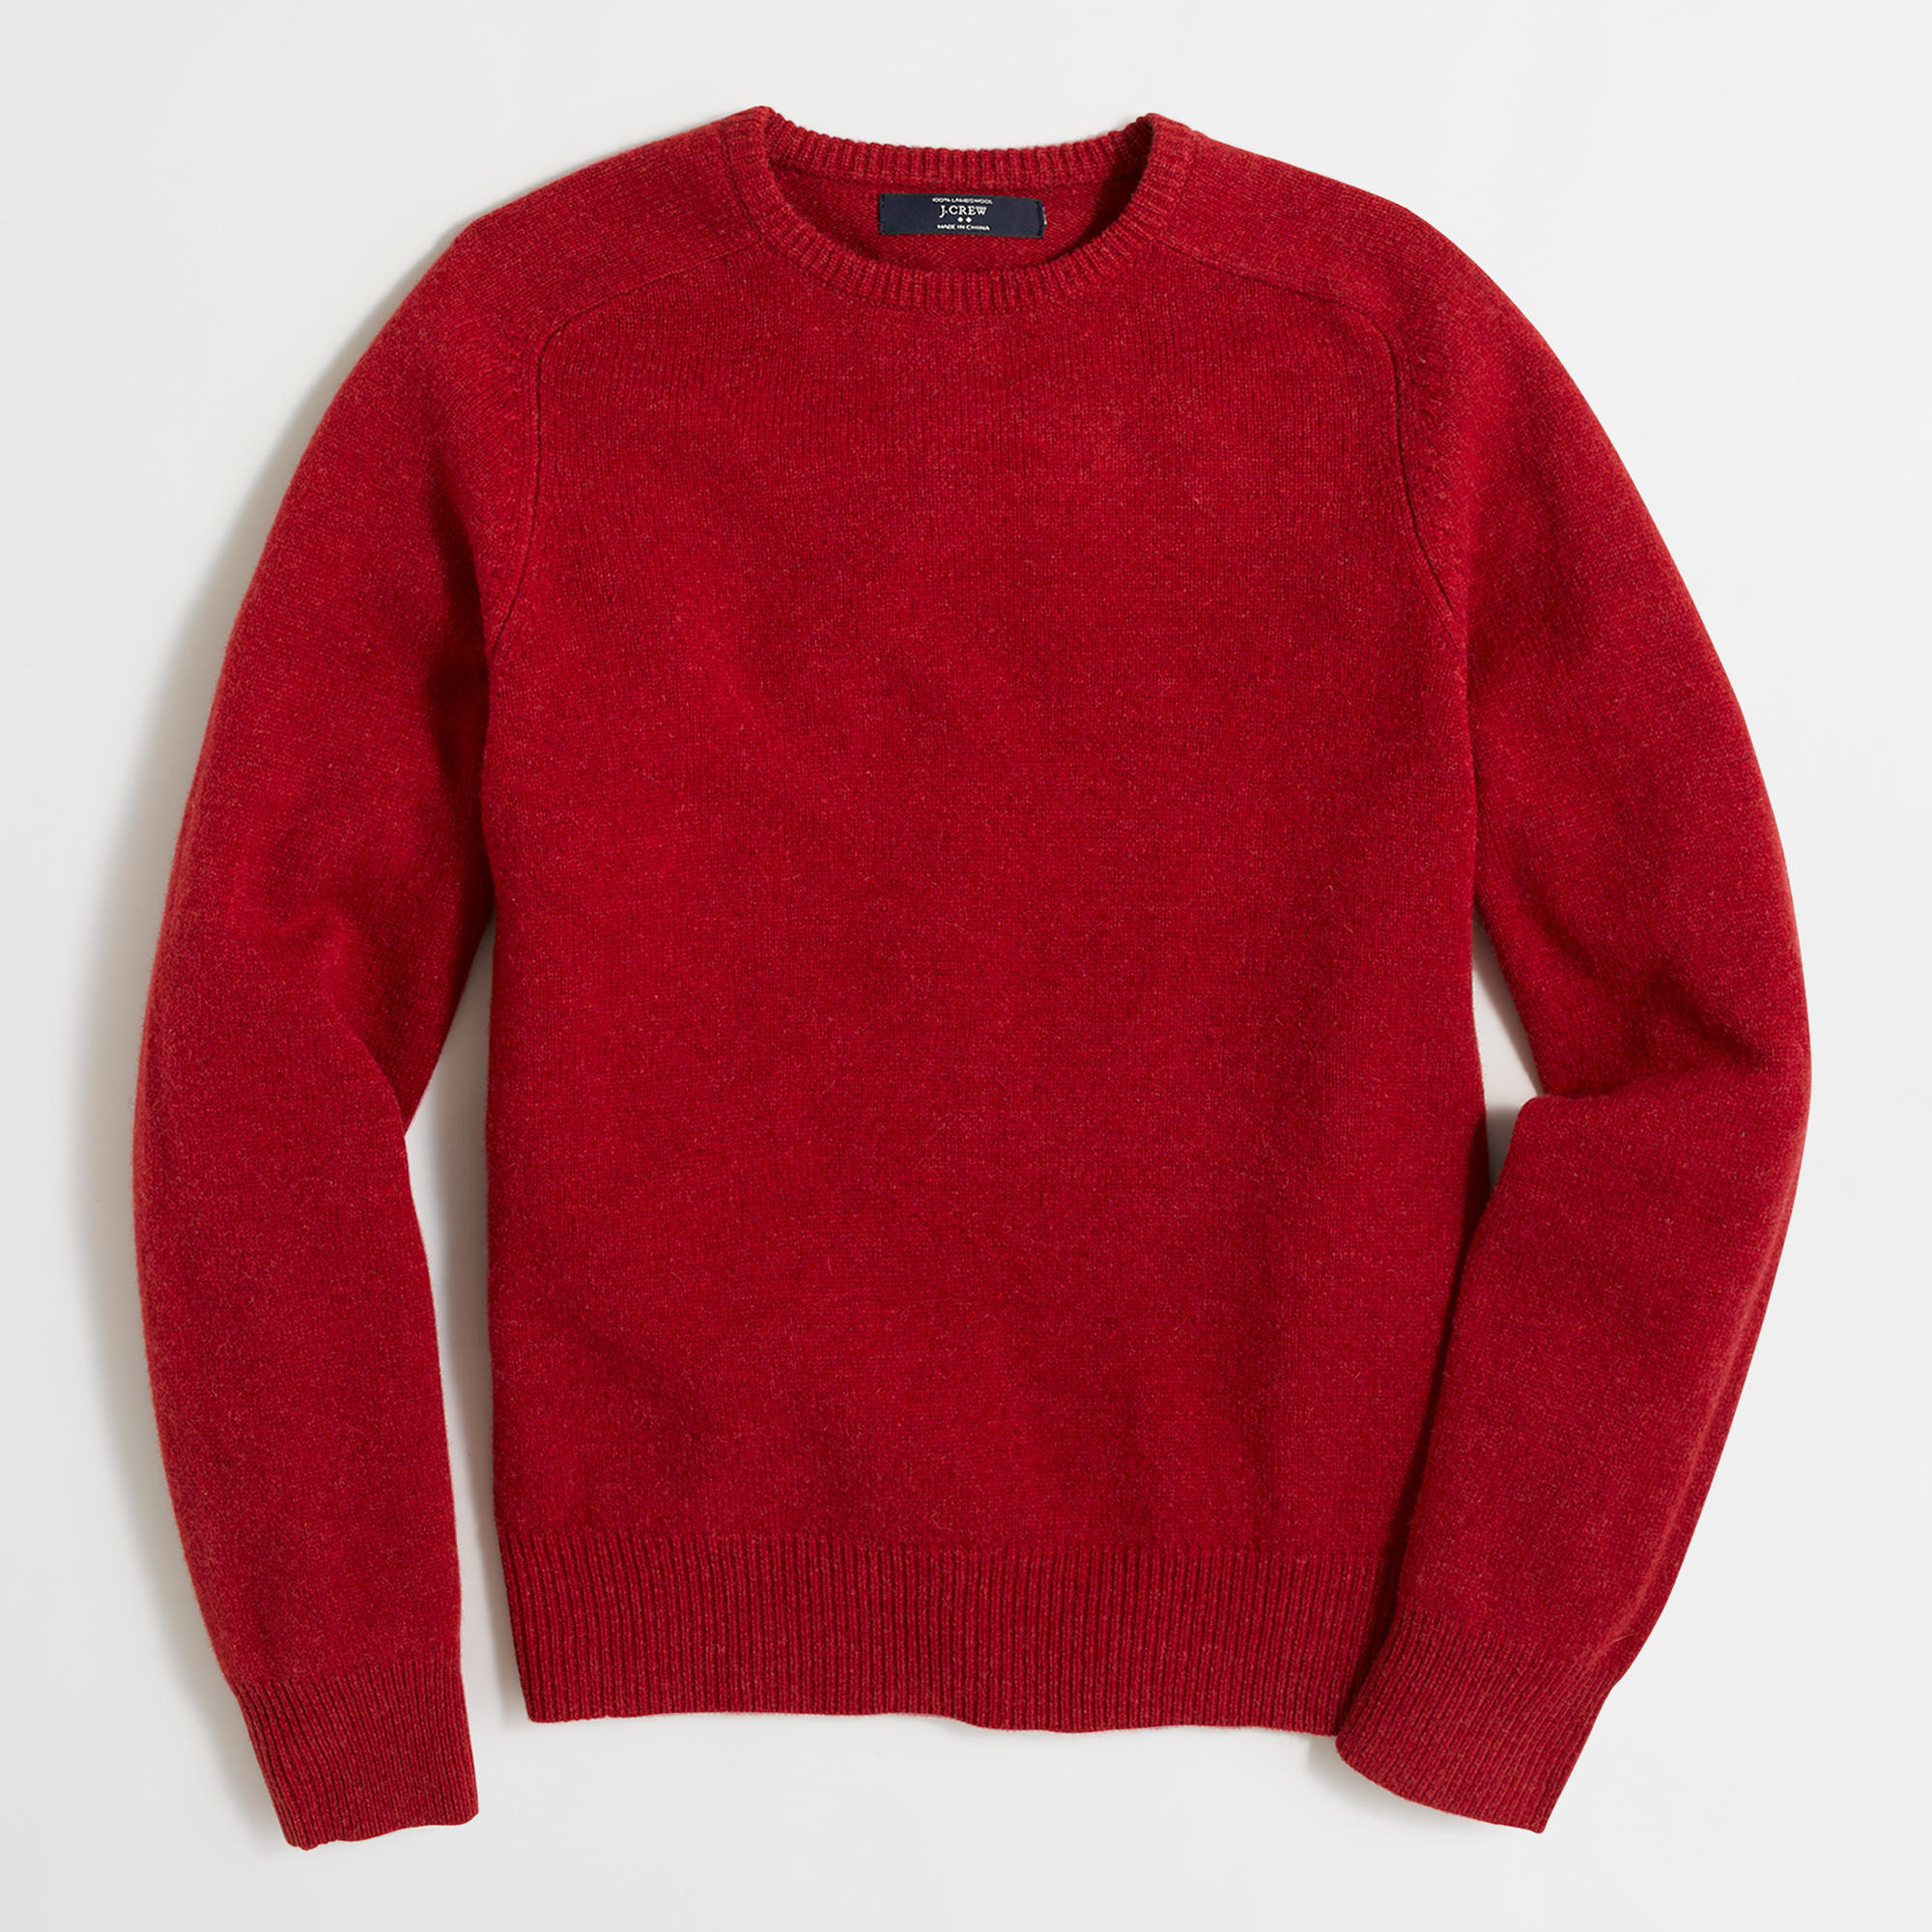 This lambswool sweater is knit using heavy-gauge yarns. What does that mean? It means that the yarns are thicker than normal and the sweater has a textured .